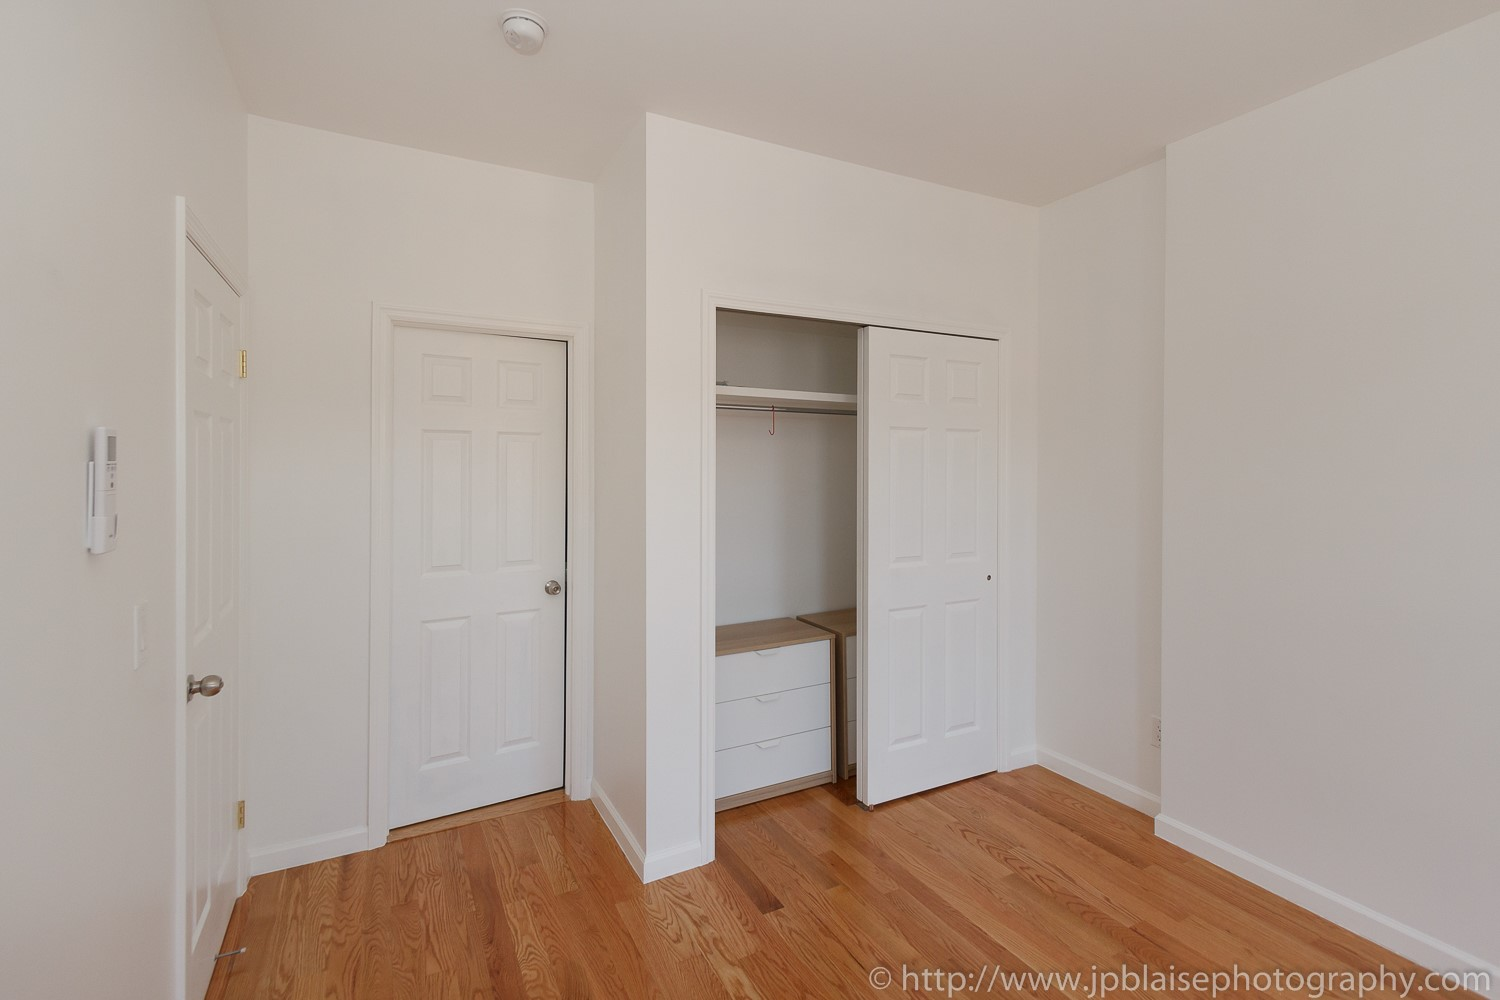 Apartment photographer bedford stuyvesant apartment New York brooklyn photography closet space